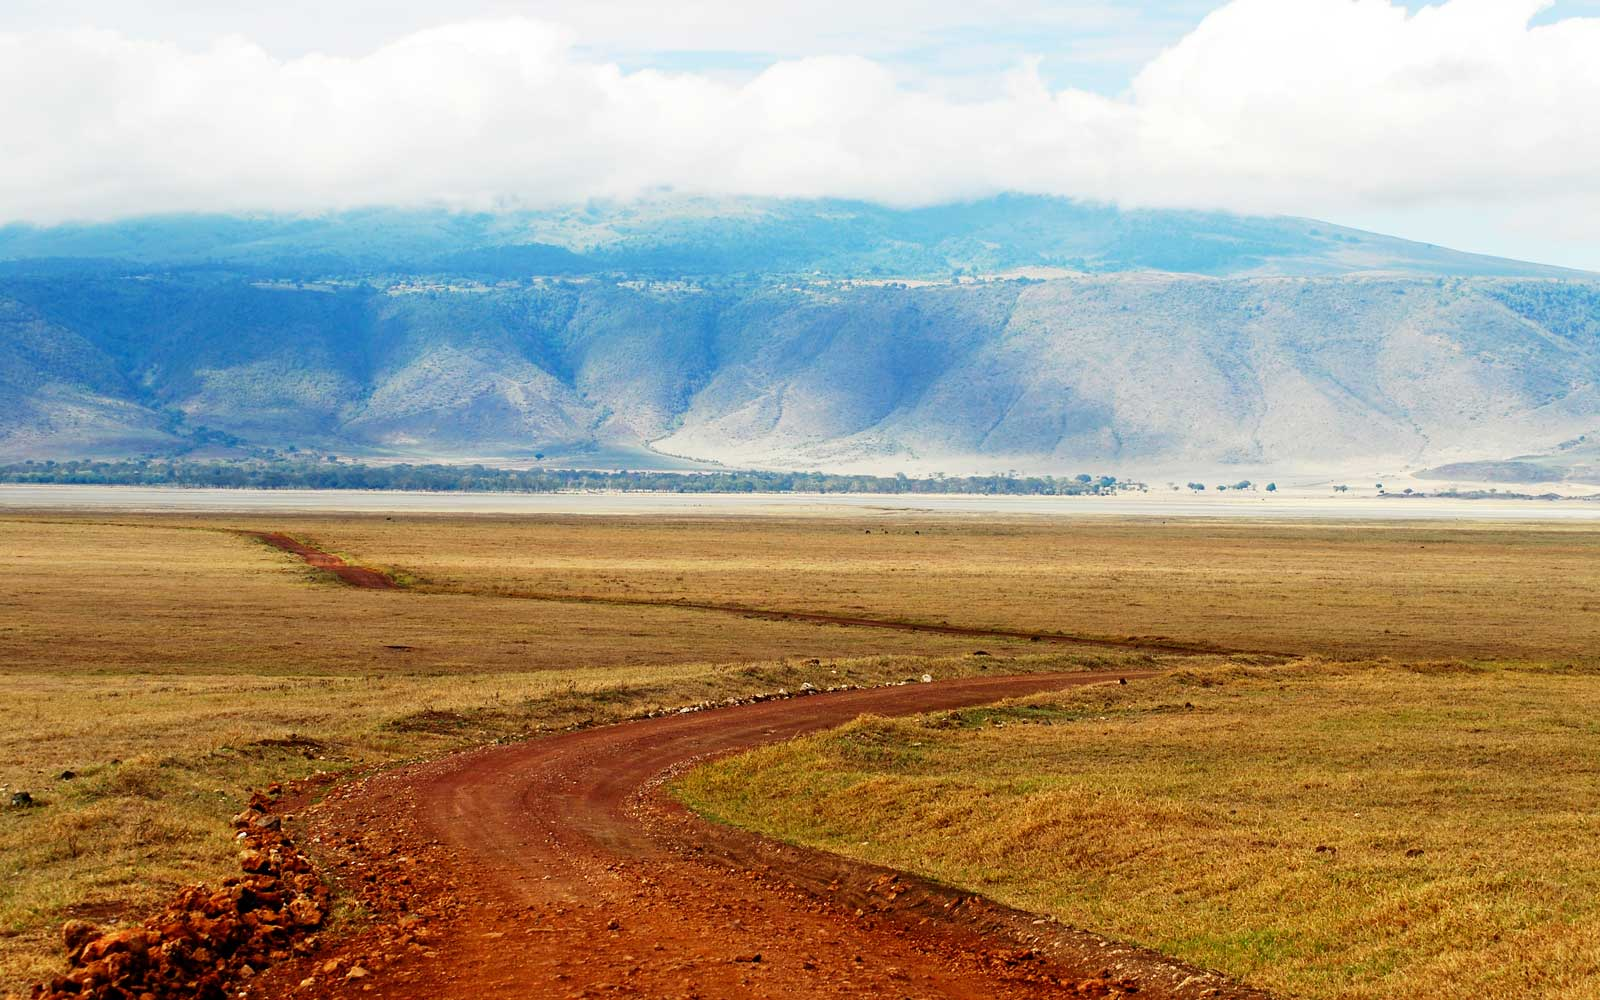 Landscape with winding road,  Ngorongoro Crater in Tanzania